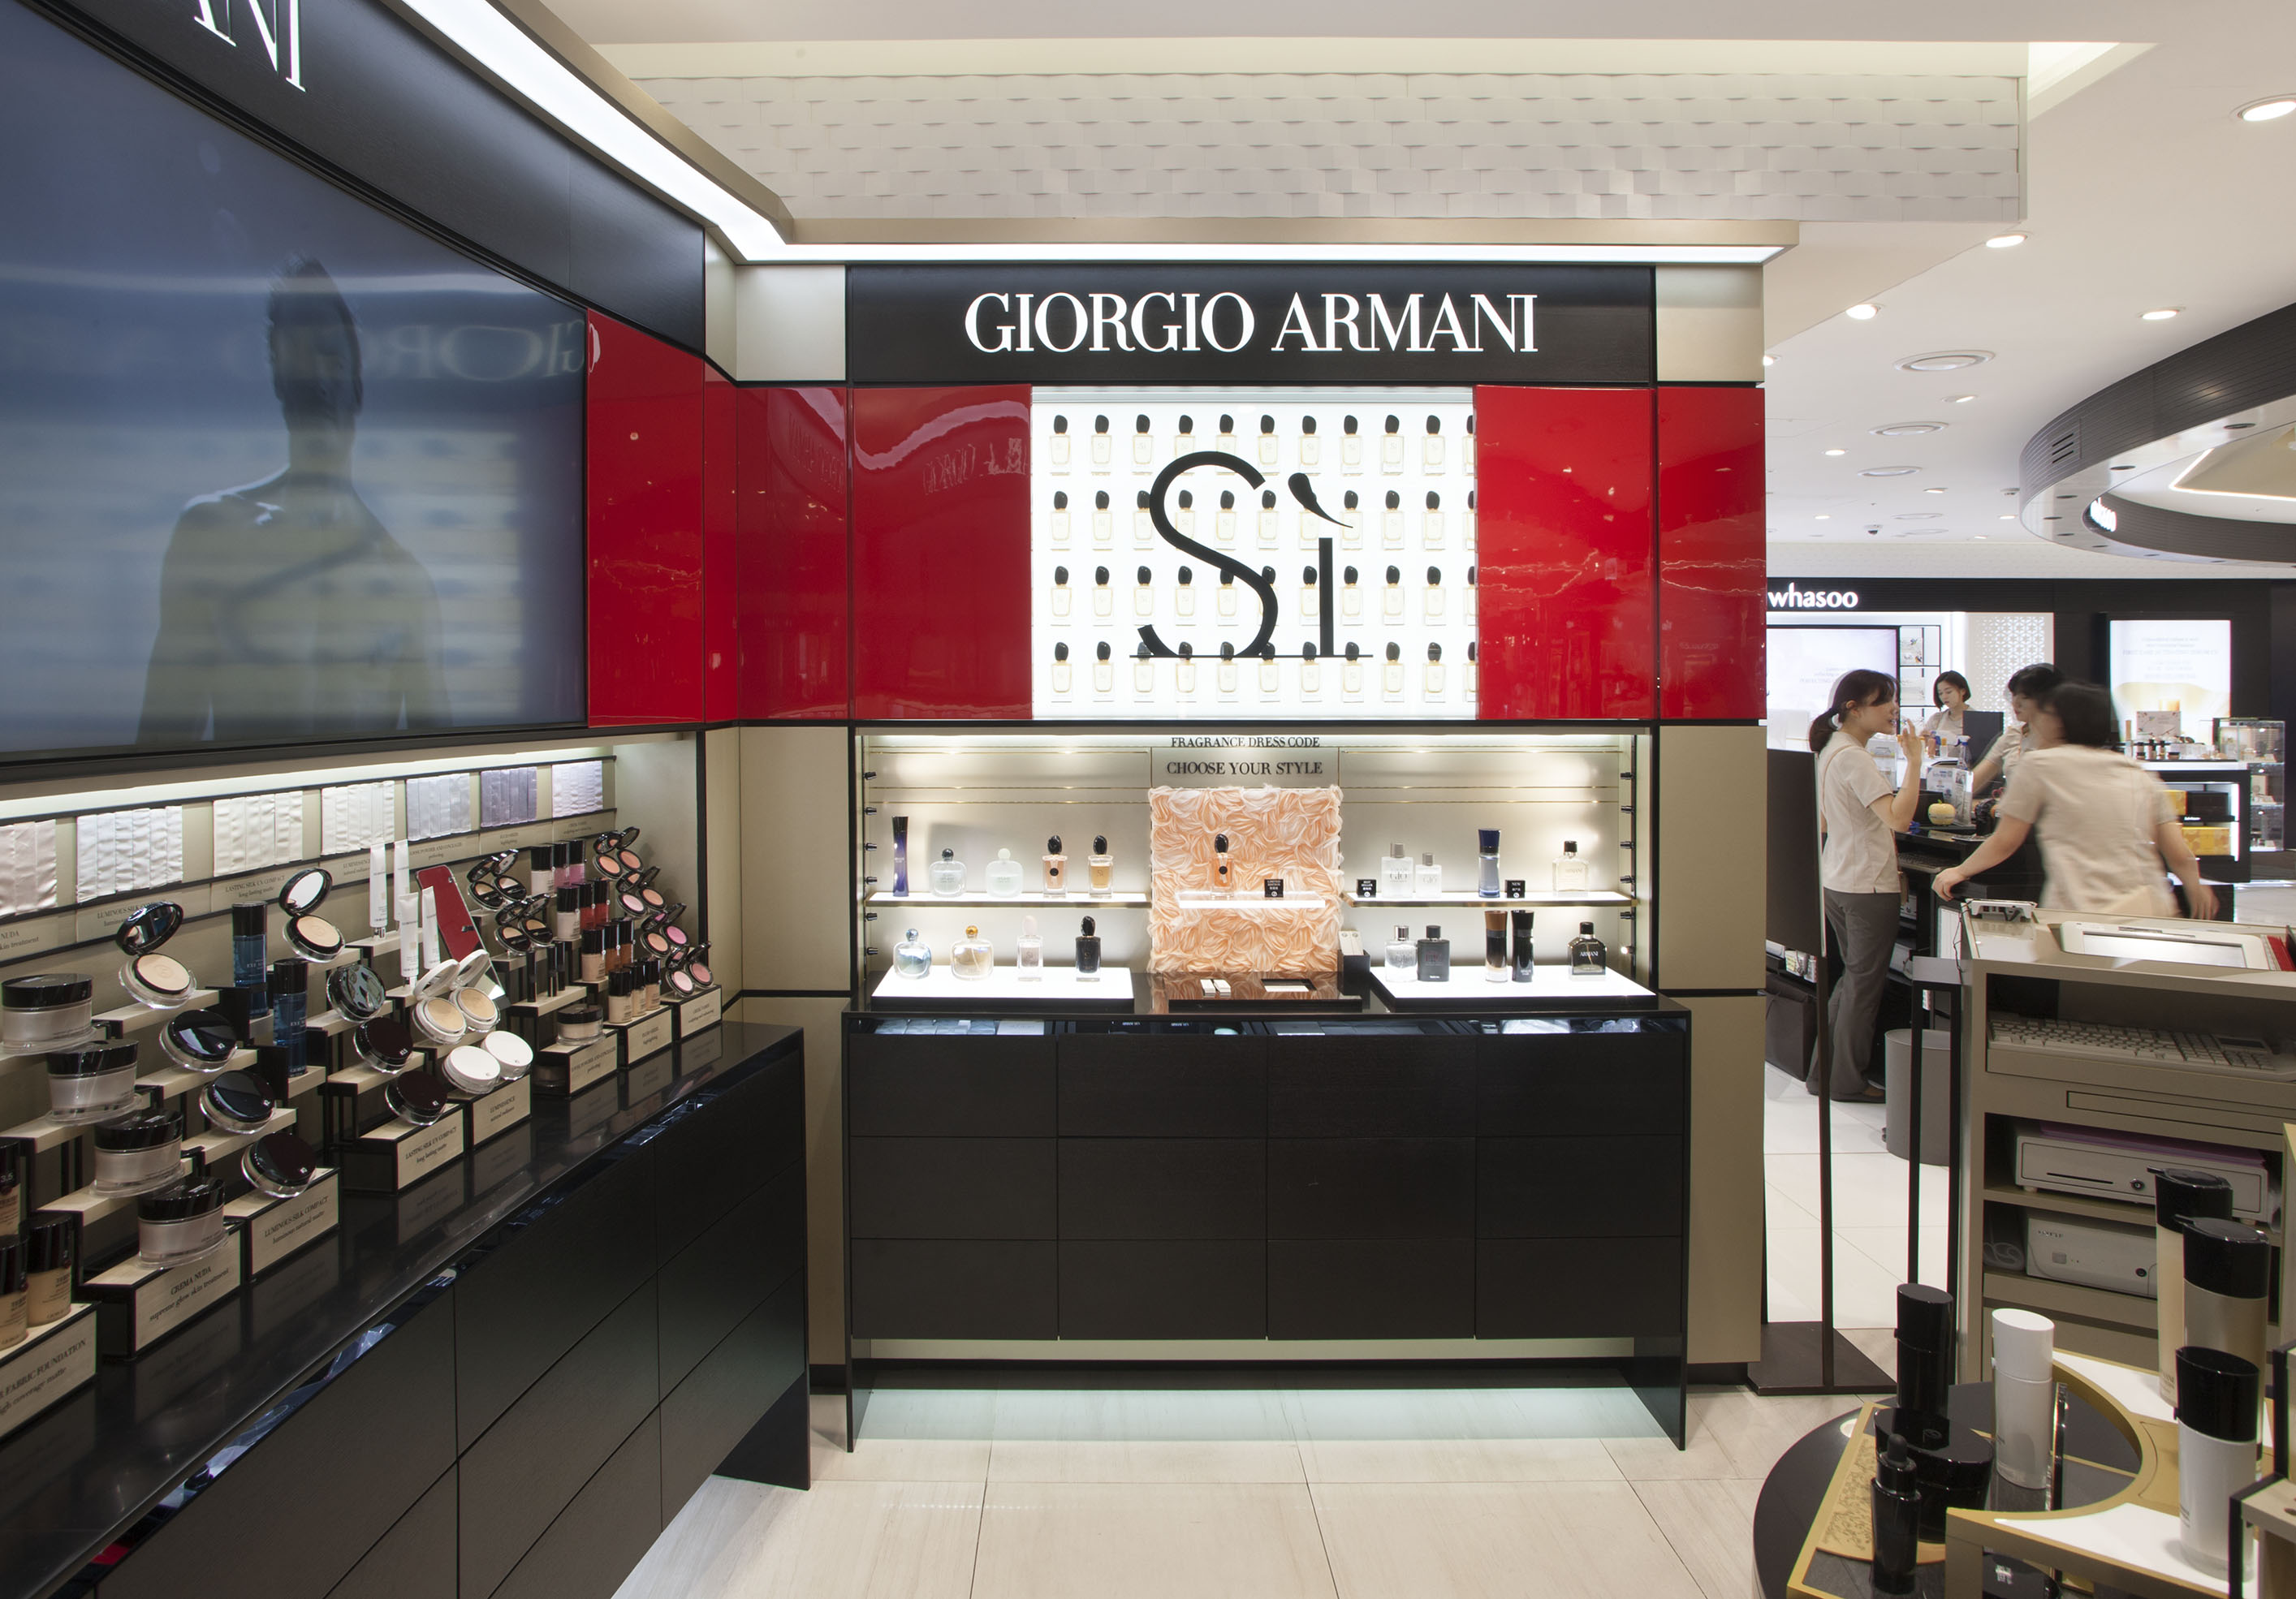 Giorgio armani opens store counter at seoul s lotte hotel for Armadi outlet